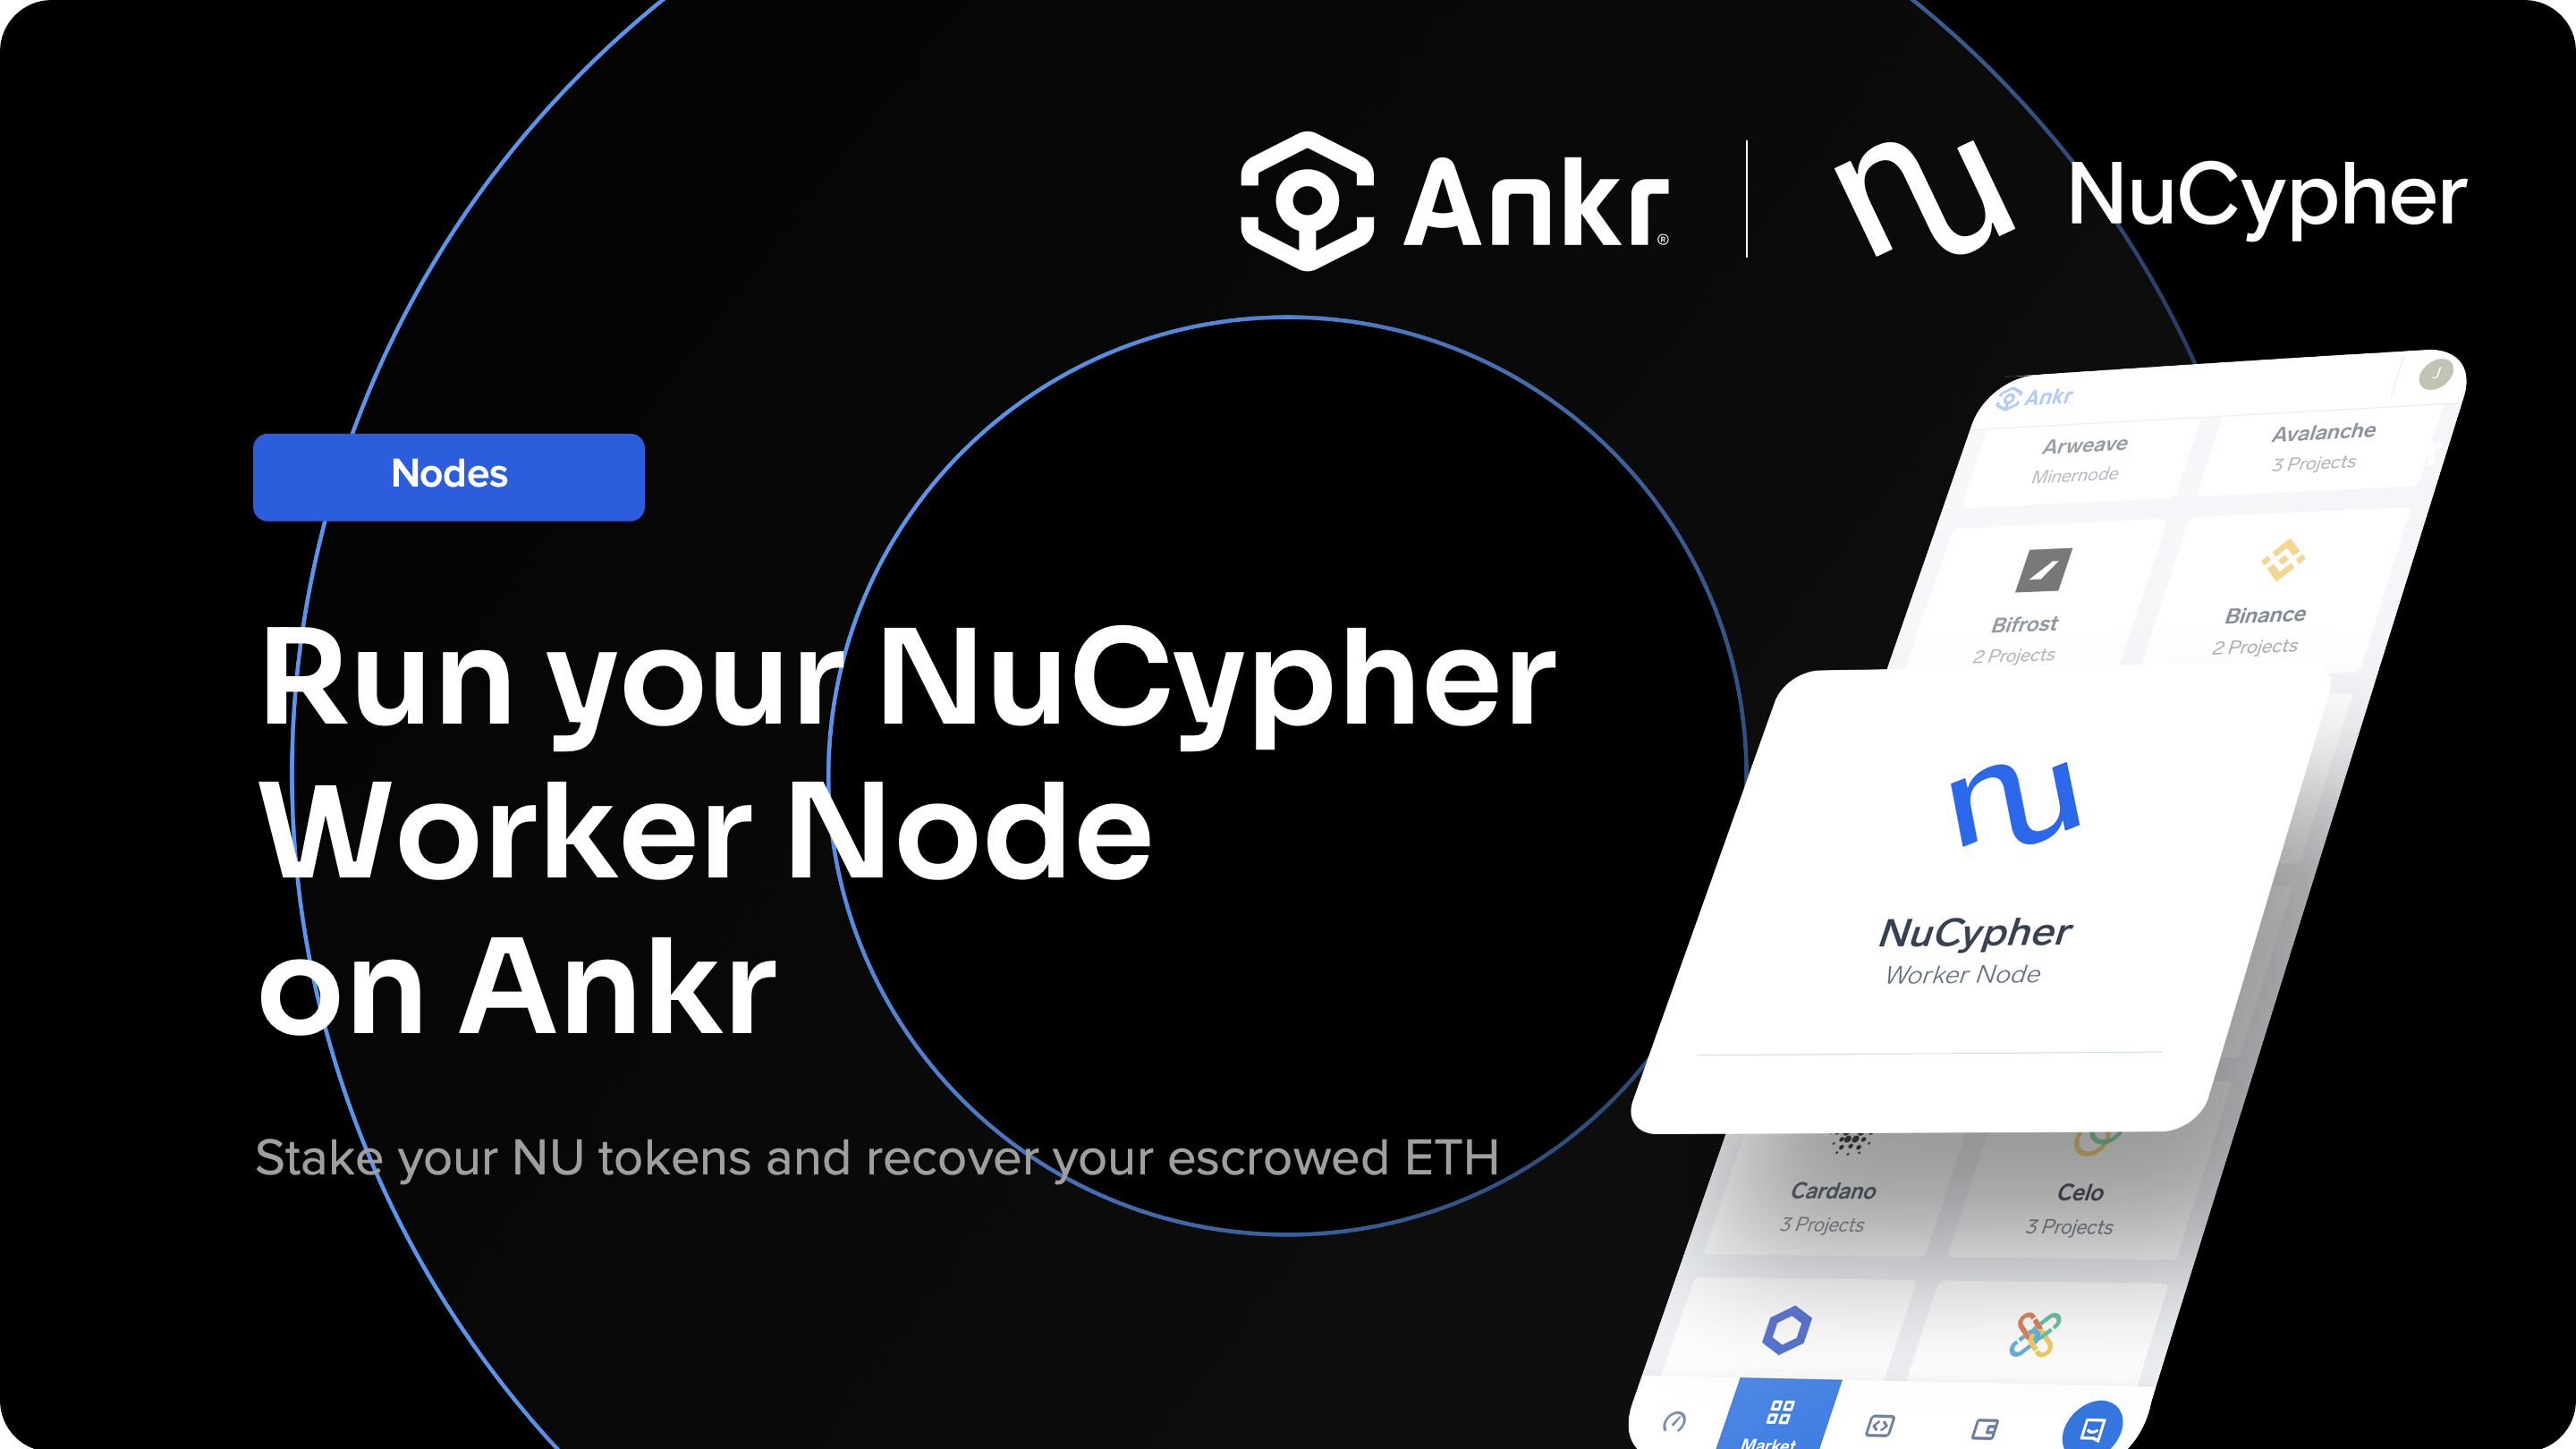 Run your NuCypher Worker Node on Ankr to stake your NU tokens, recover your escrowed ETH and earn rewards